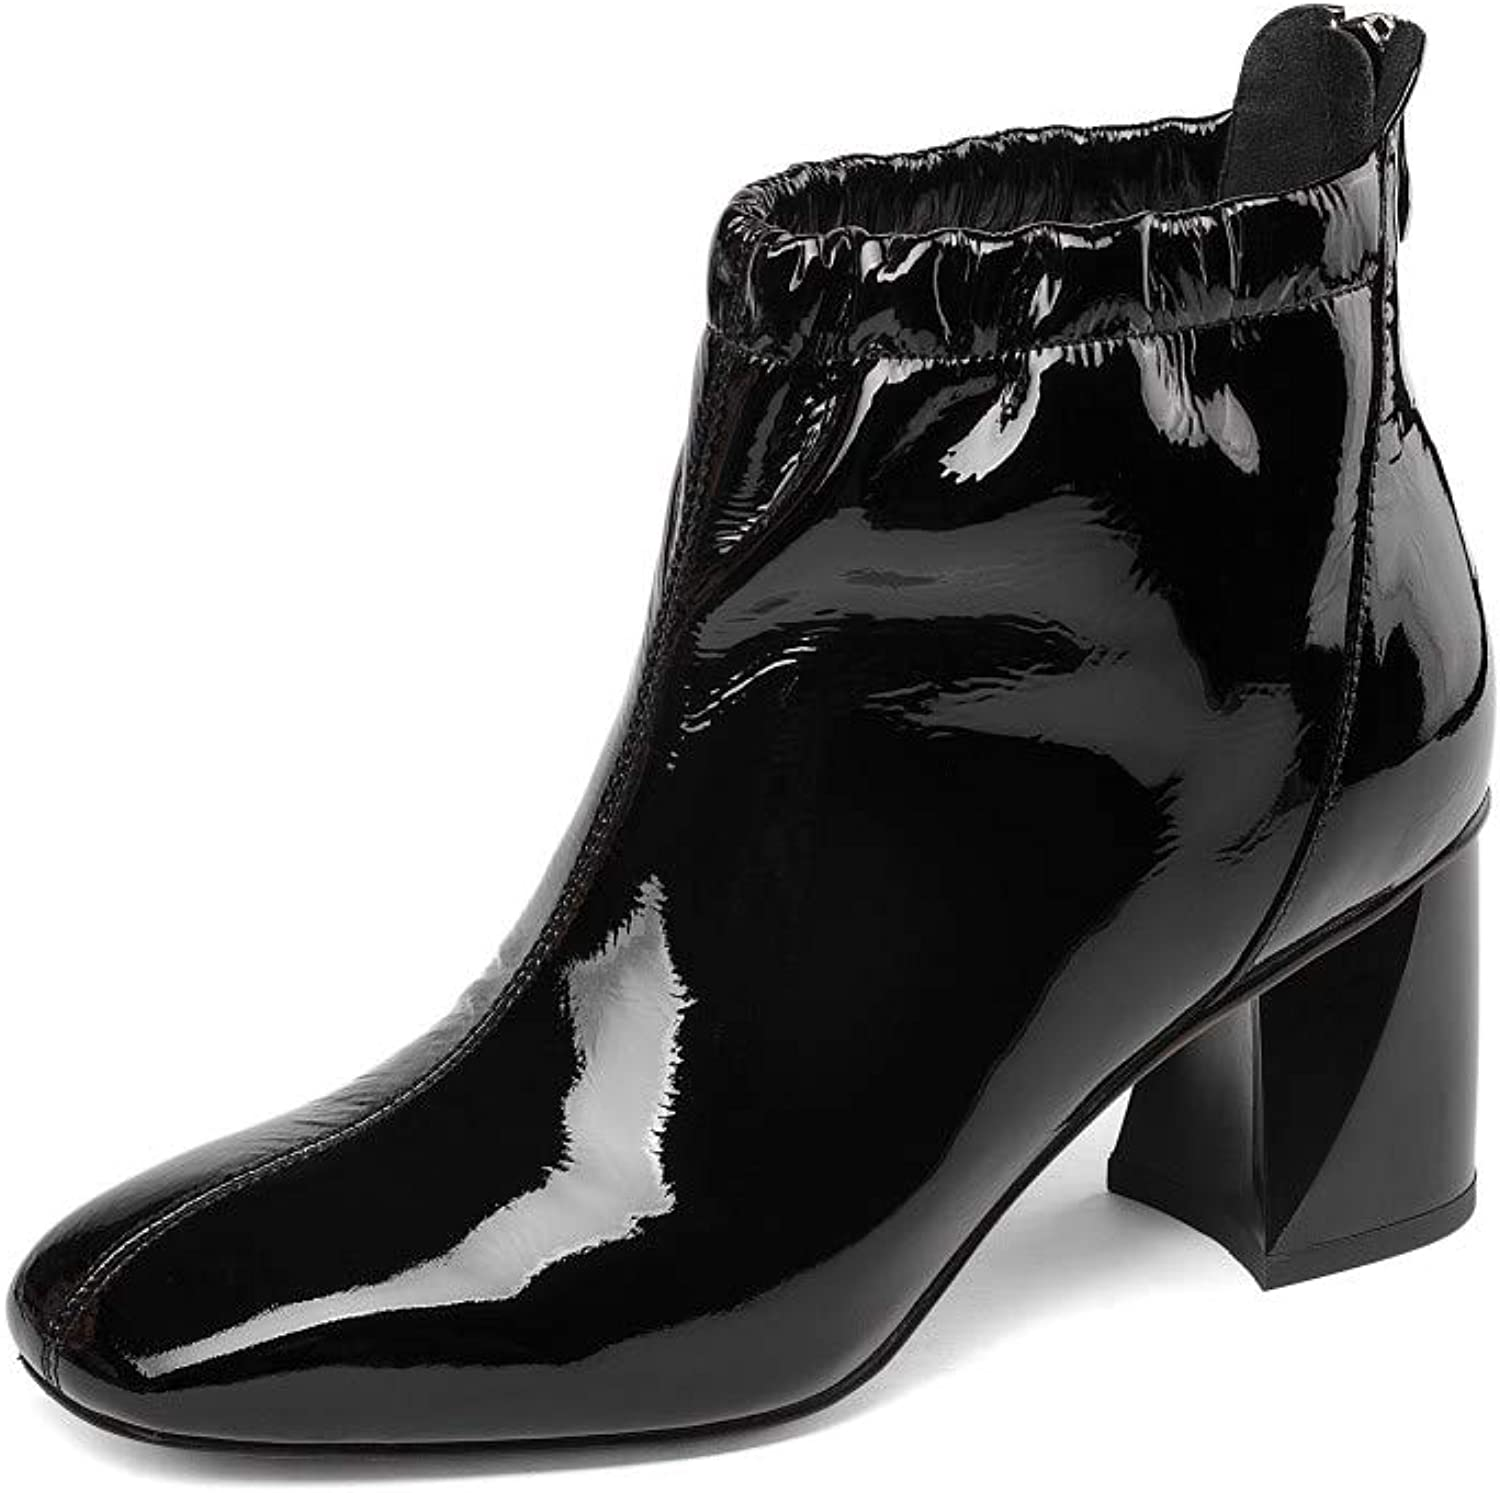 Nine Seven Women's Patent Leather Square Toe Mid Chunky Heel Back Zip Handmade Comfort Dress Ankle Boots